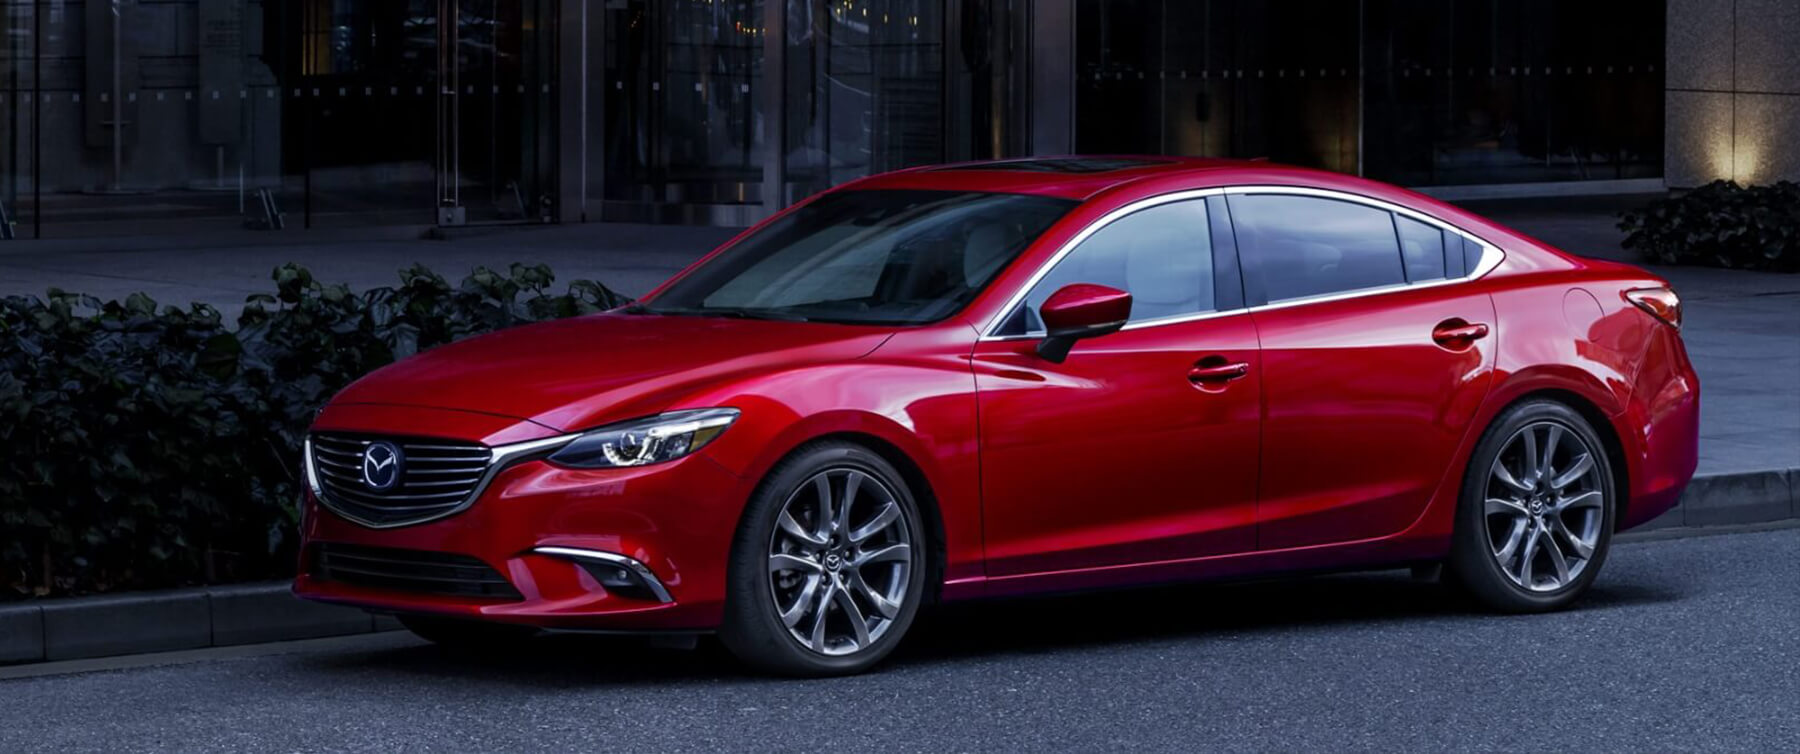 Discover The Mazda Sedans Hatchbacks At Headquarter Mazda